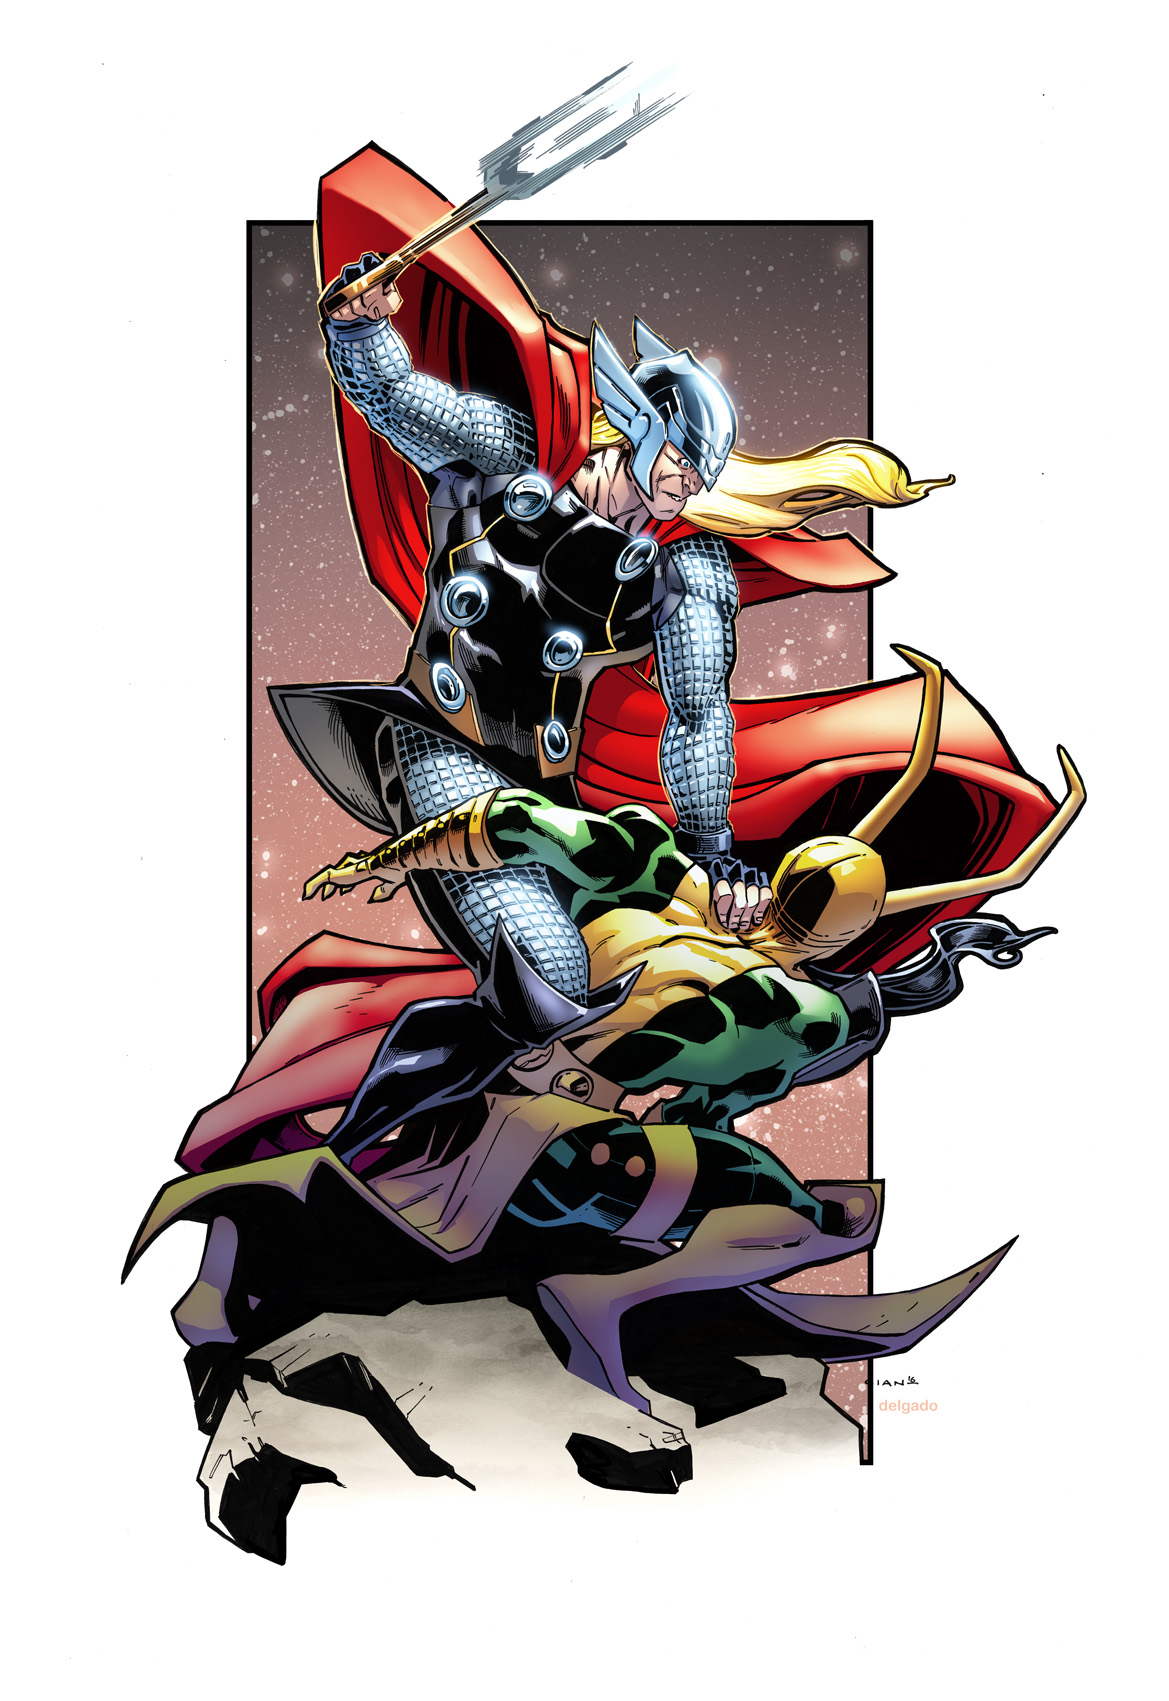 Thor V Loki -  By Cian Tormey, colours by Edgar Delgado